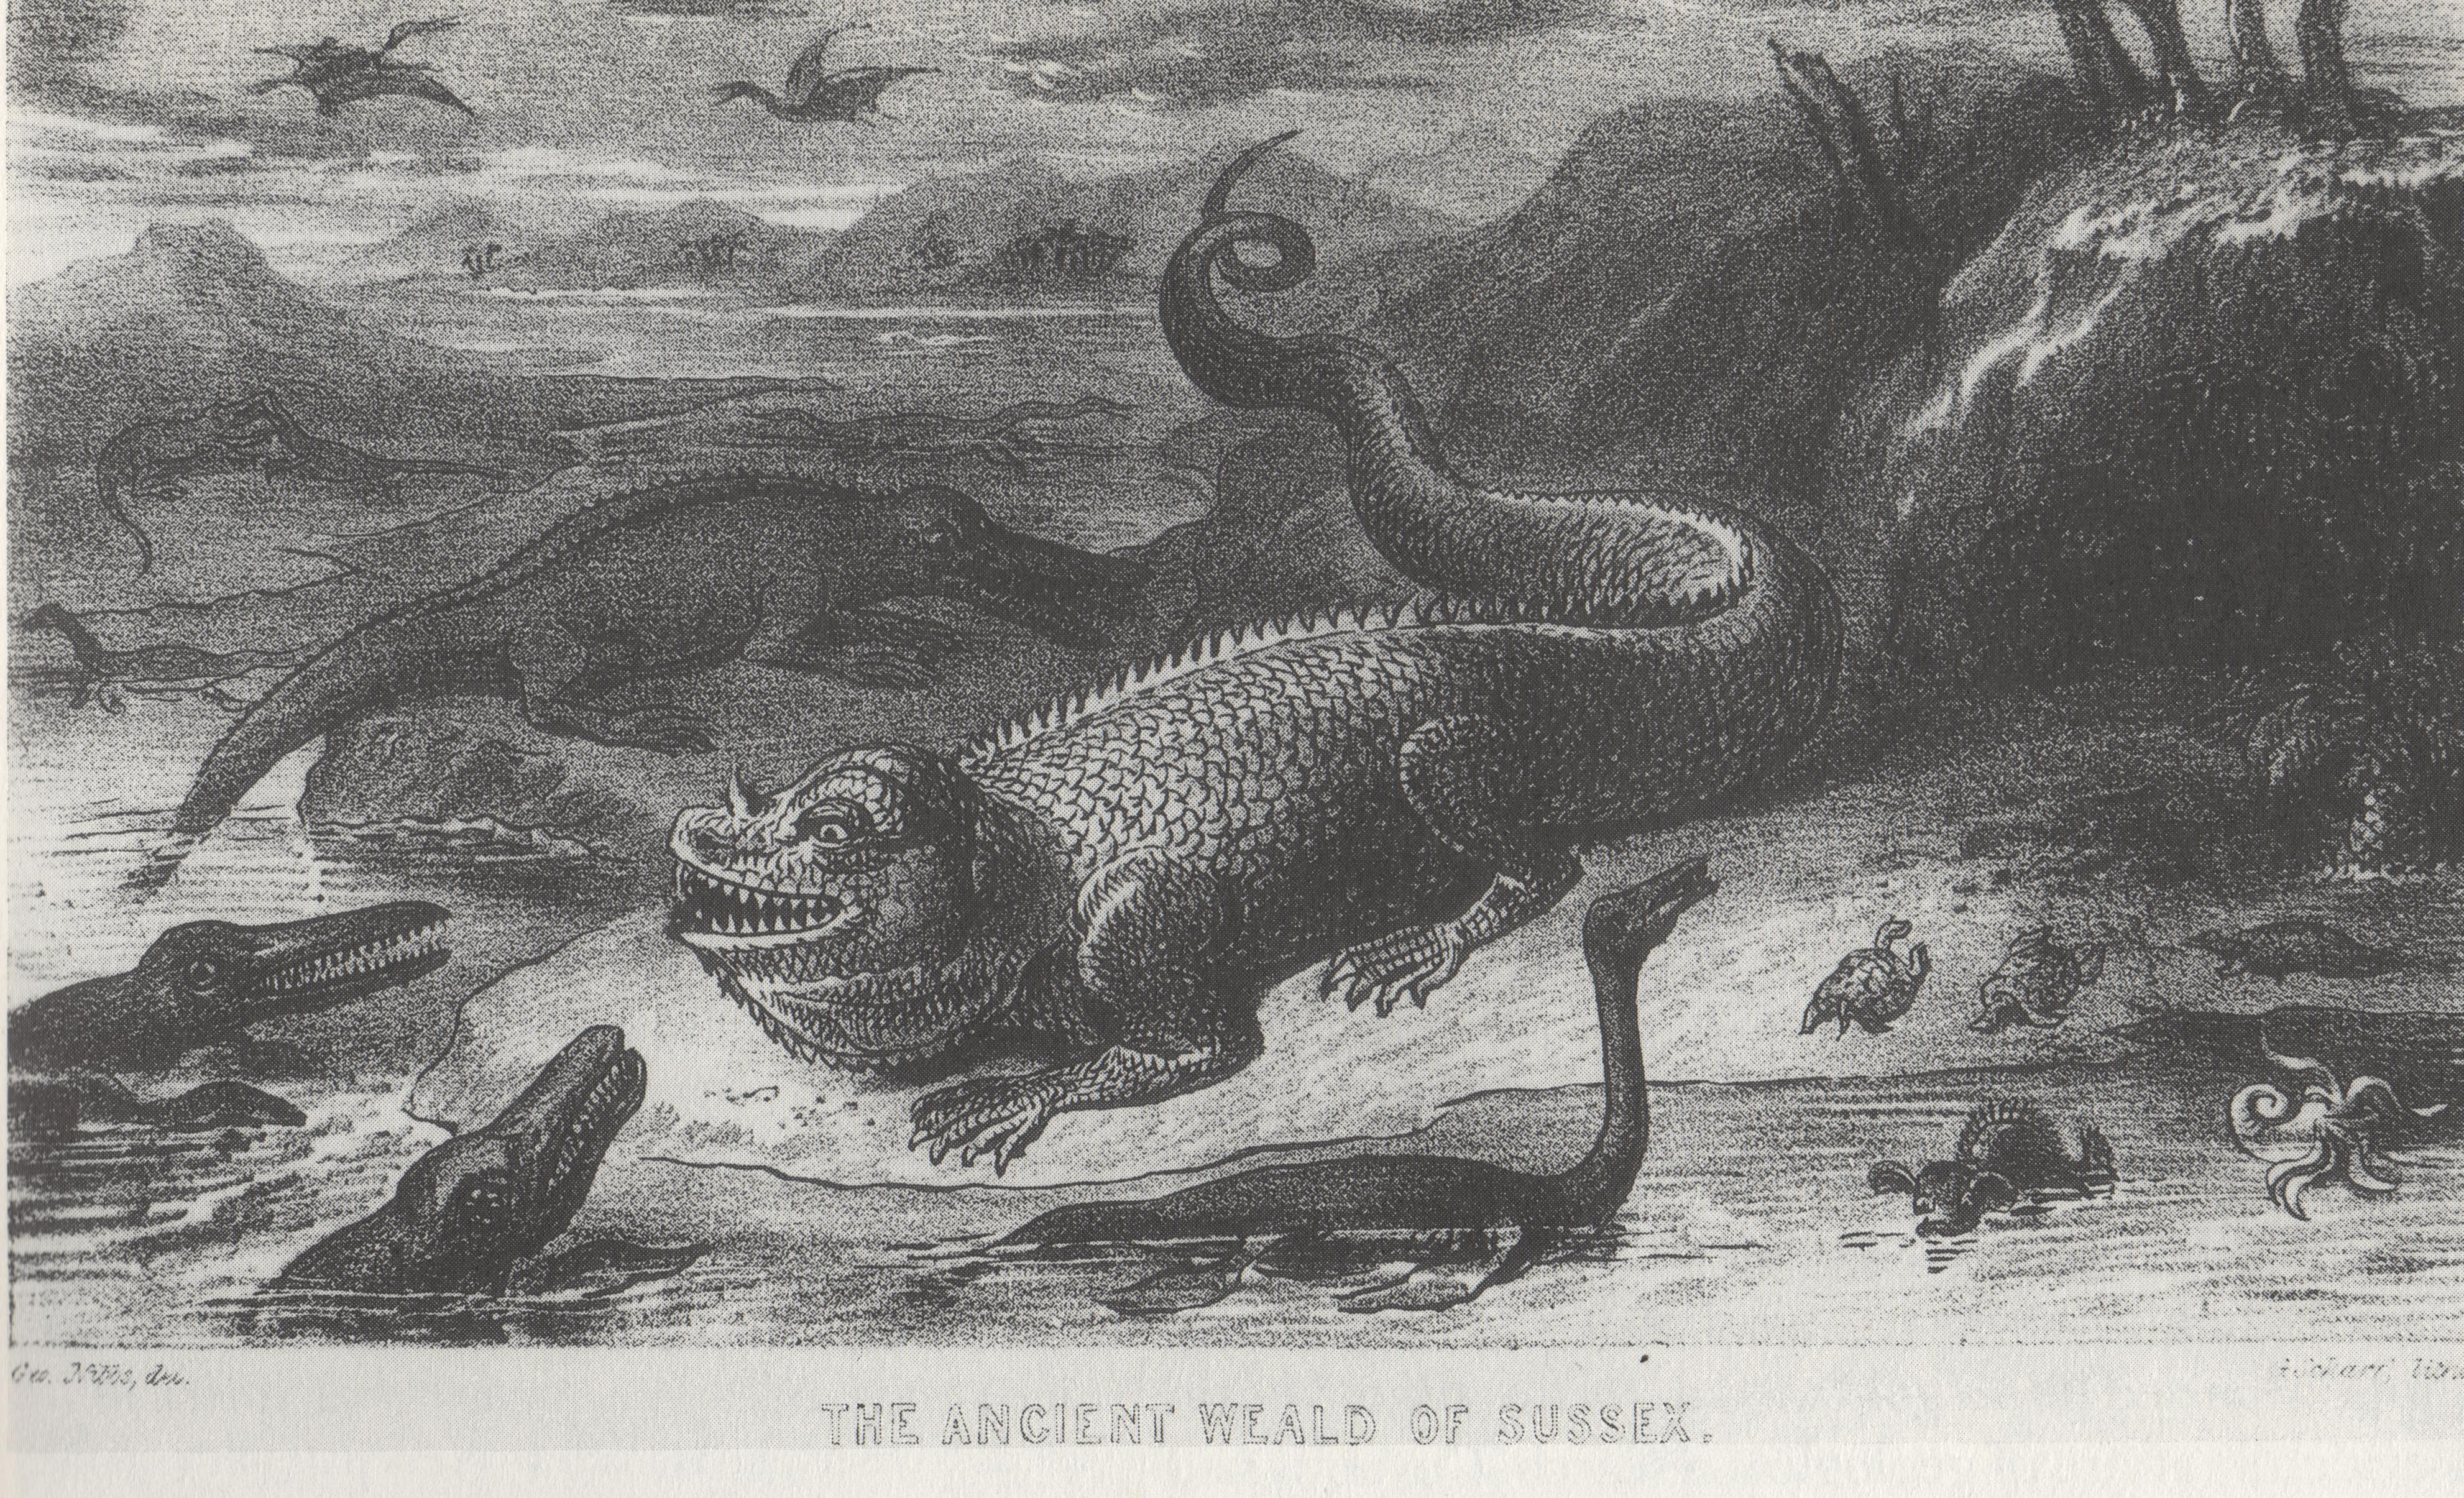 Figure 1 : Iguanodon par Nibbs (in Richardson, 1838, Sketches in Prose and Verse)